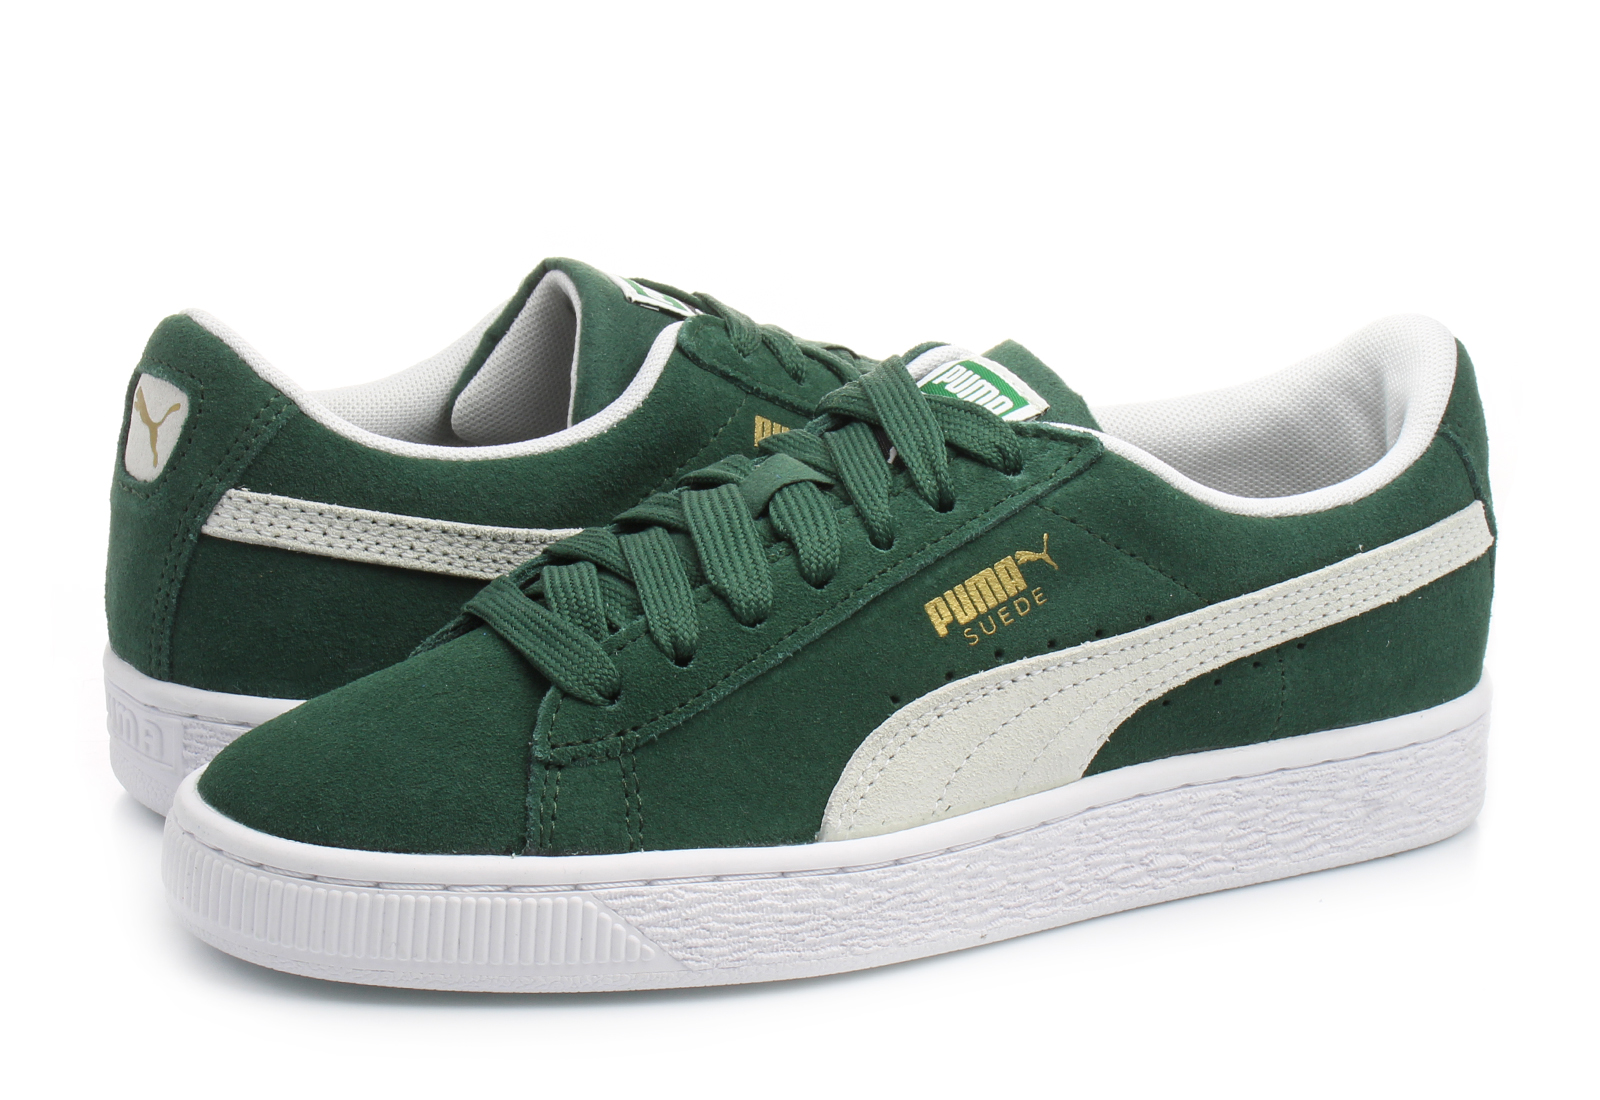 8b1363e122 Puma Shoes - Suede Classic Jr - 36507306-gre - Online shop for ...